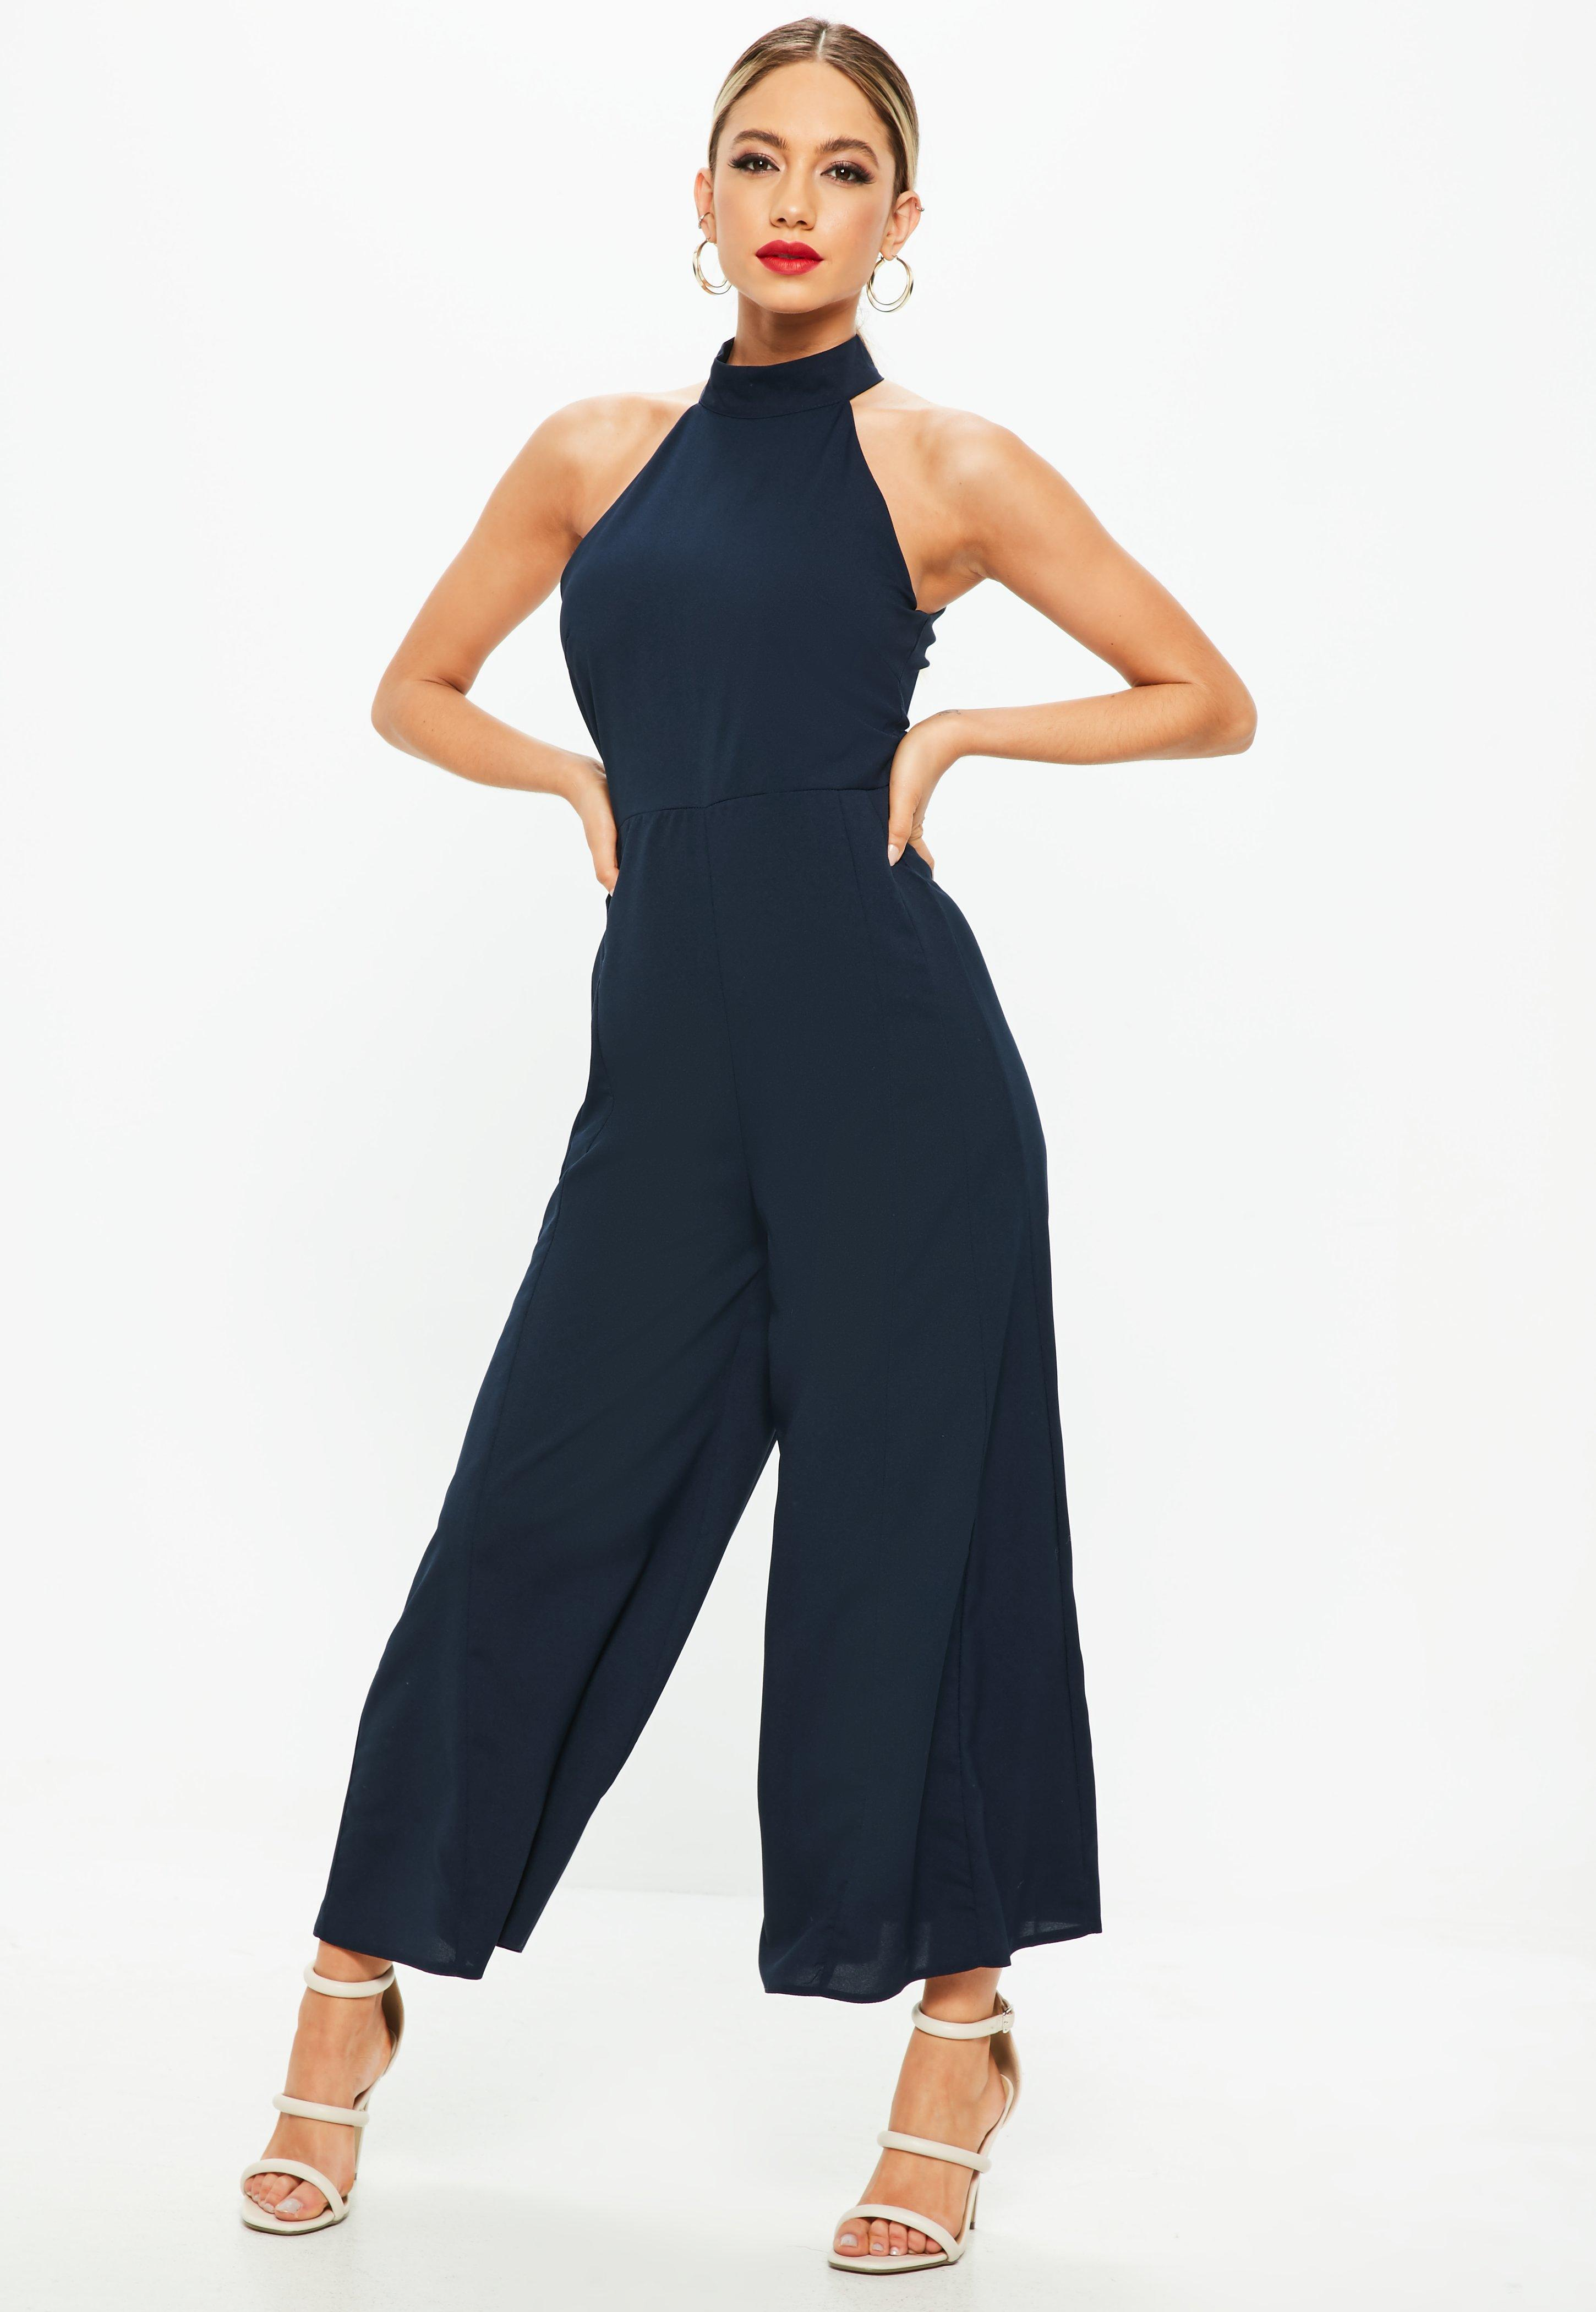 56d56ba4c7e7 Lyst - Missguided Navy High Neck Jumpsuit in Blue